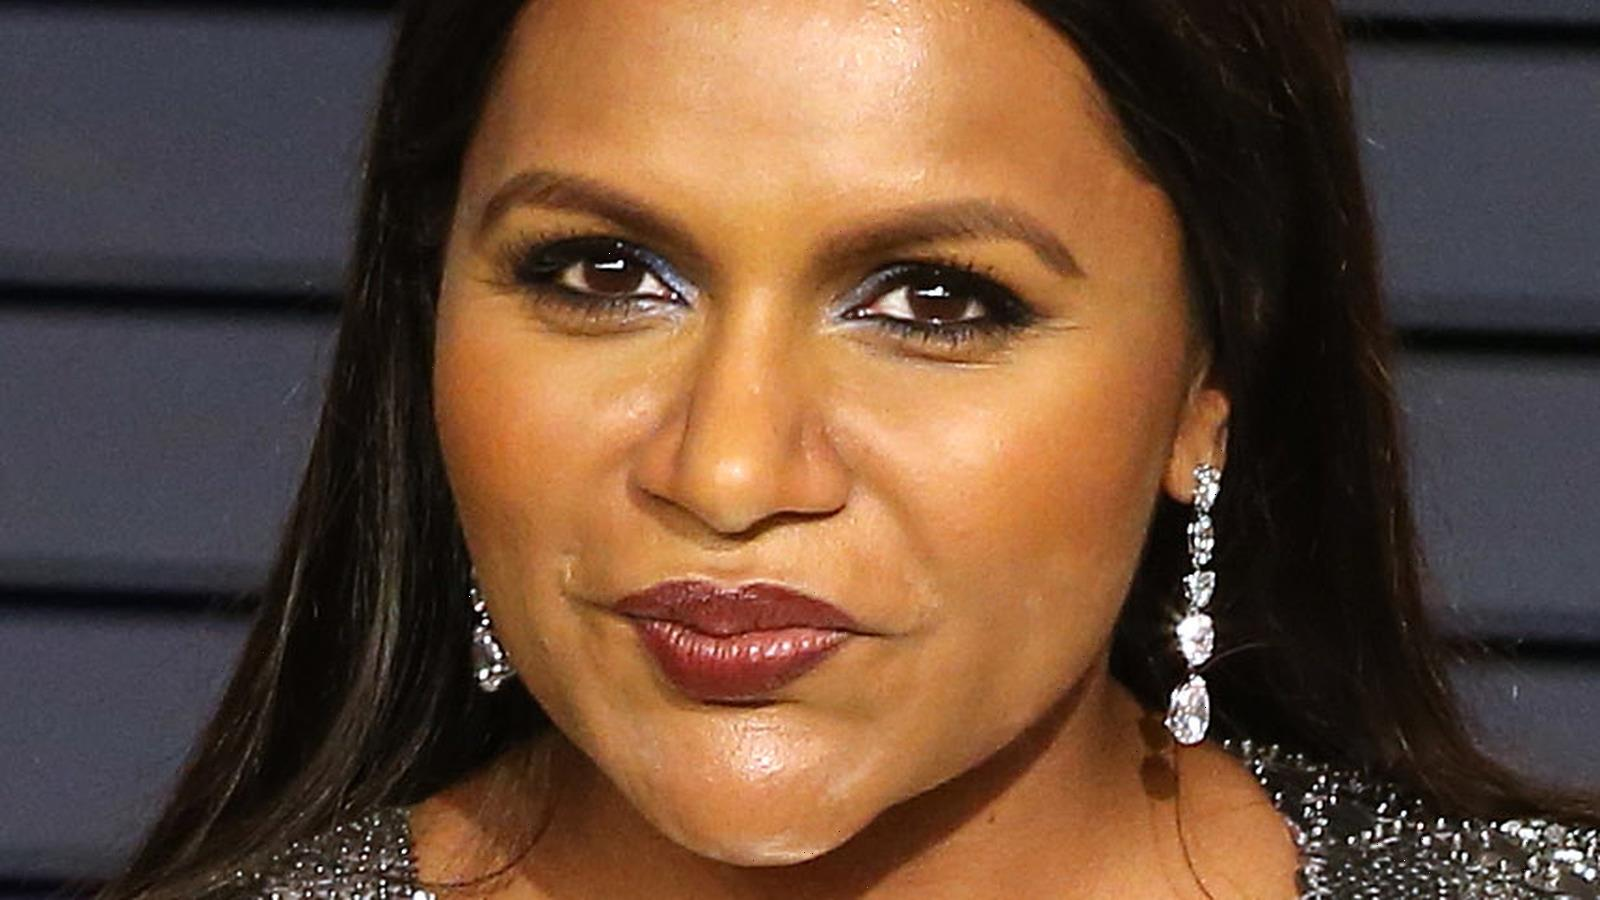 The Real Reason Mindy Kaling Won't Say Who Fathered Her Kids